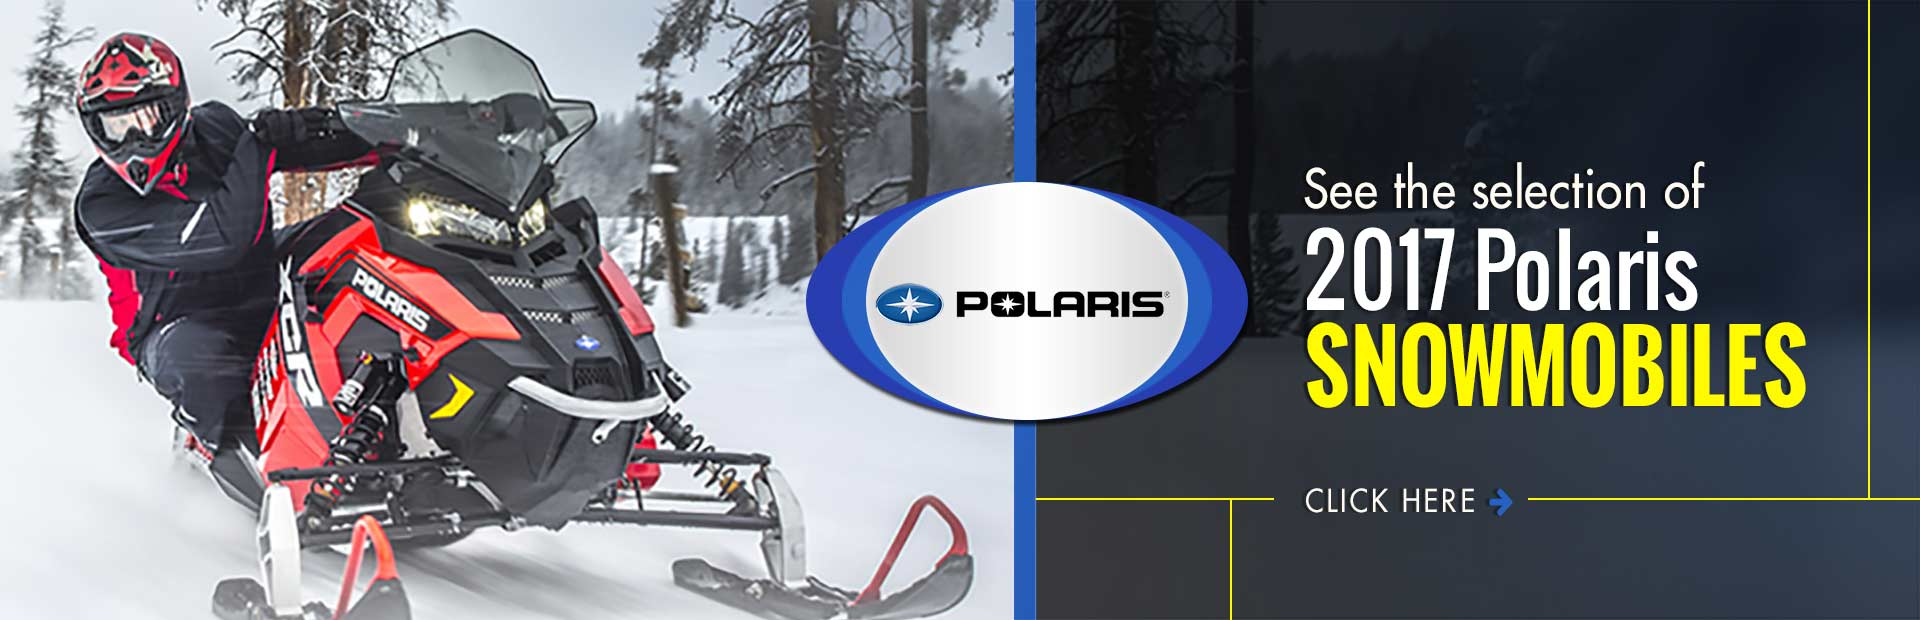 2017 Polaris Snowmobiles: Click here to see our selection!